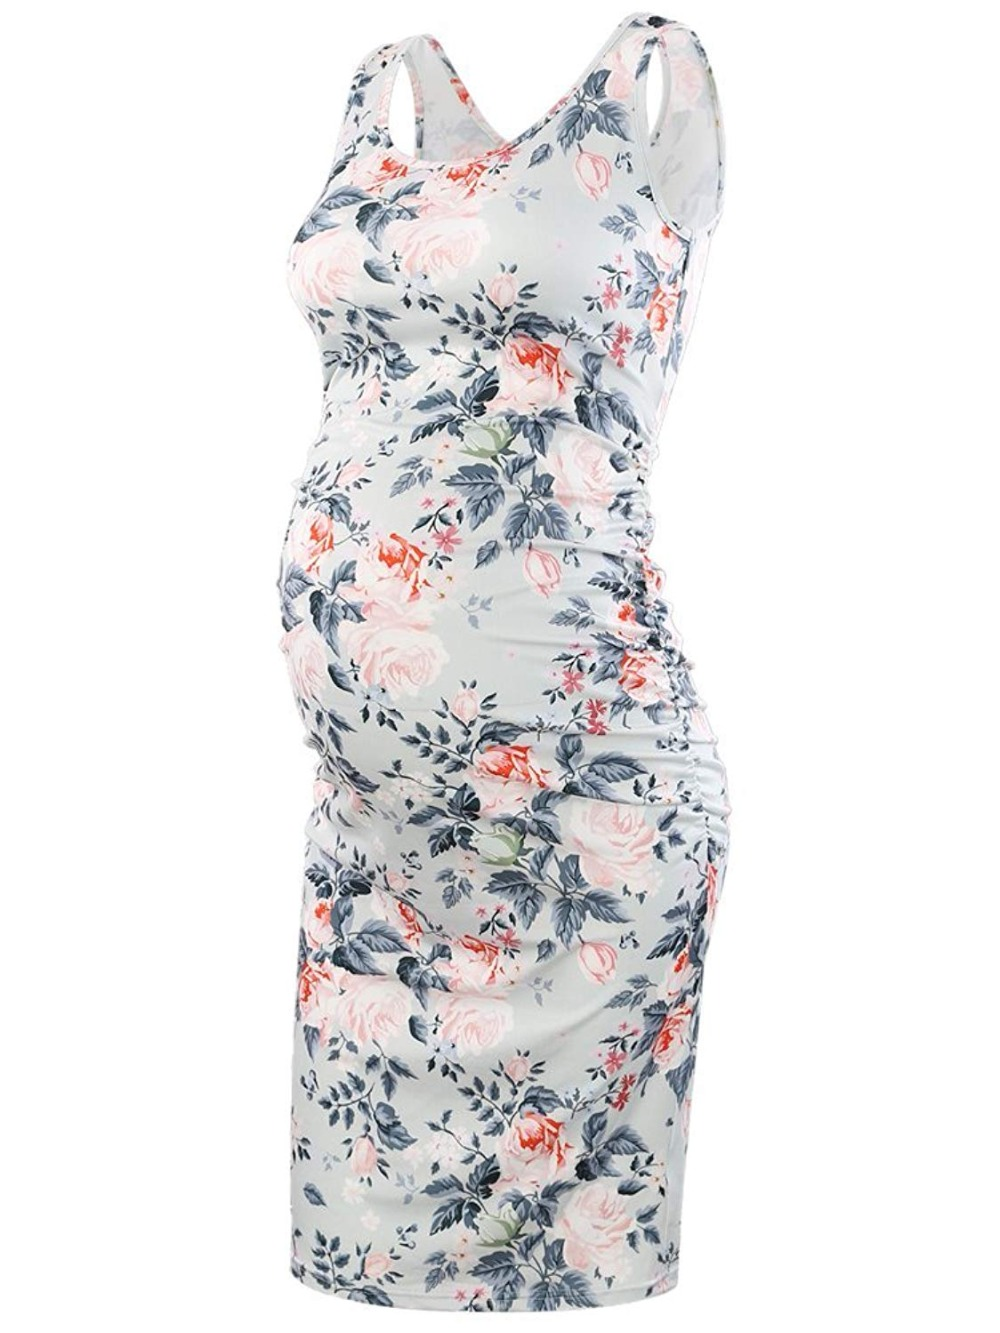 Maternity Sleeveless Dresses Maternity Clothes Bodycon Floral Tank Dress Mama Scoop Neck Baby Shower Pregnancy Dress Flower